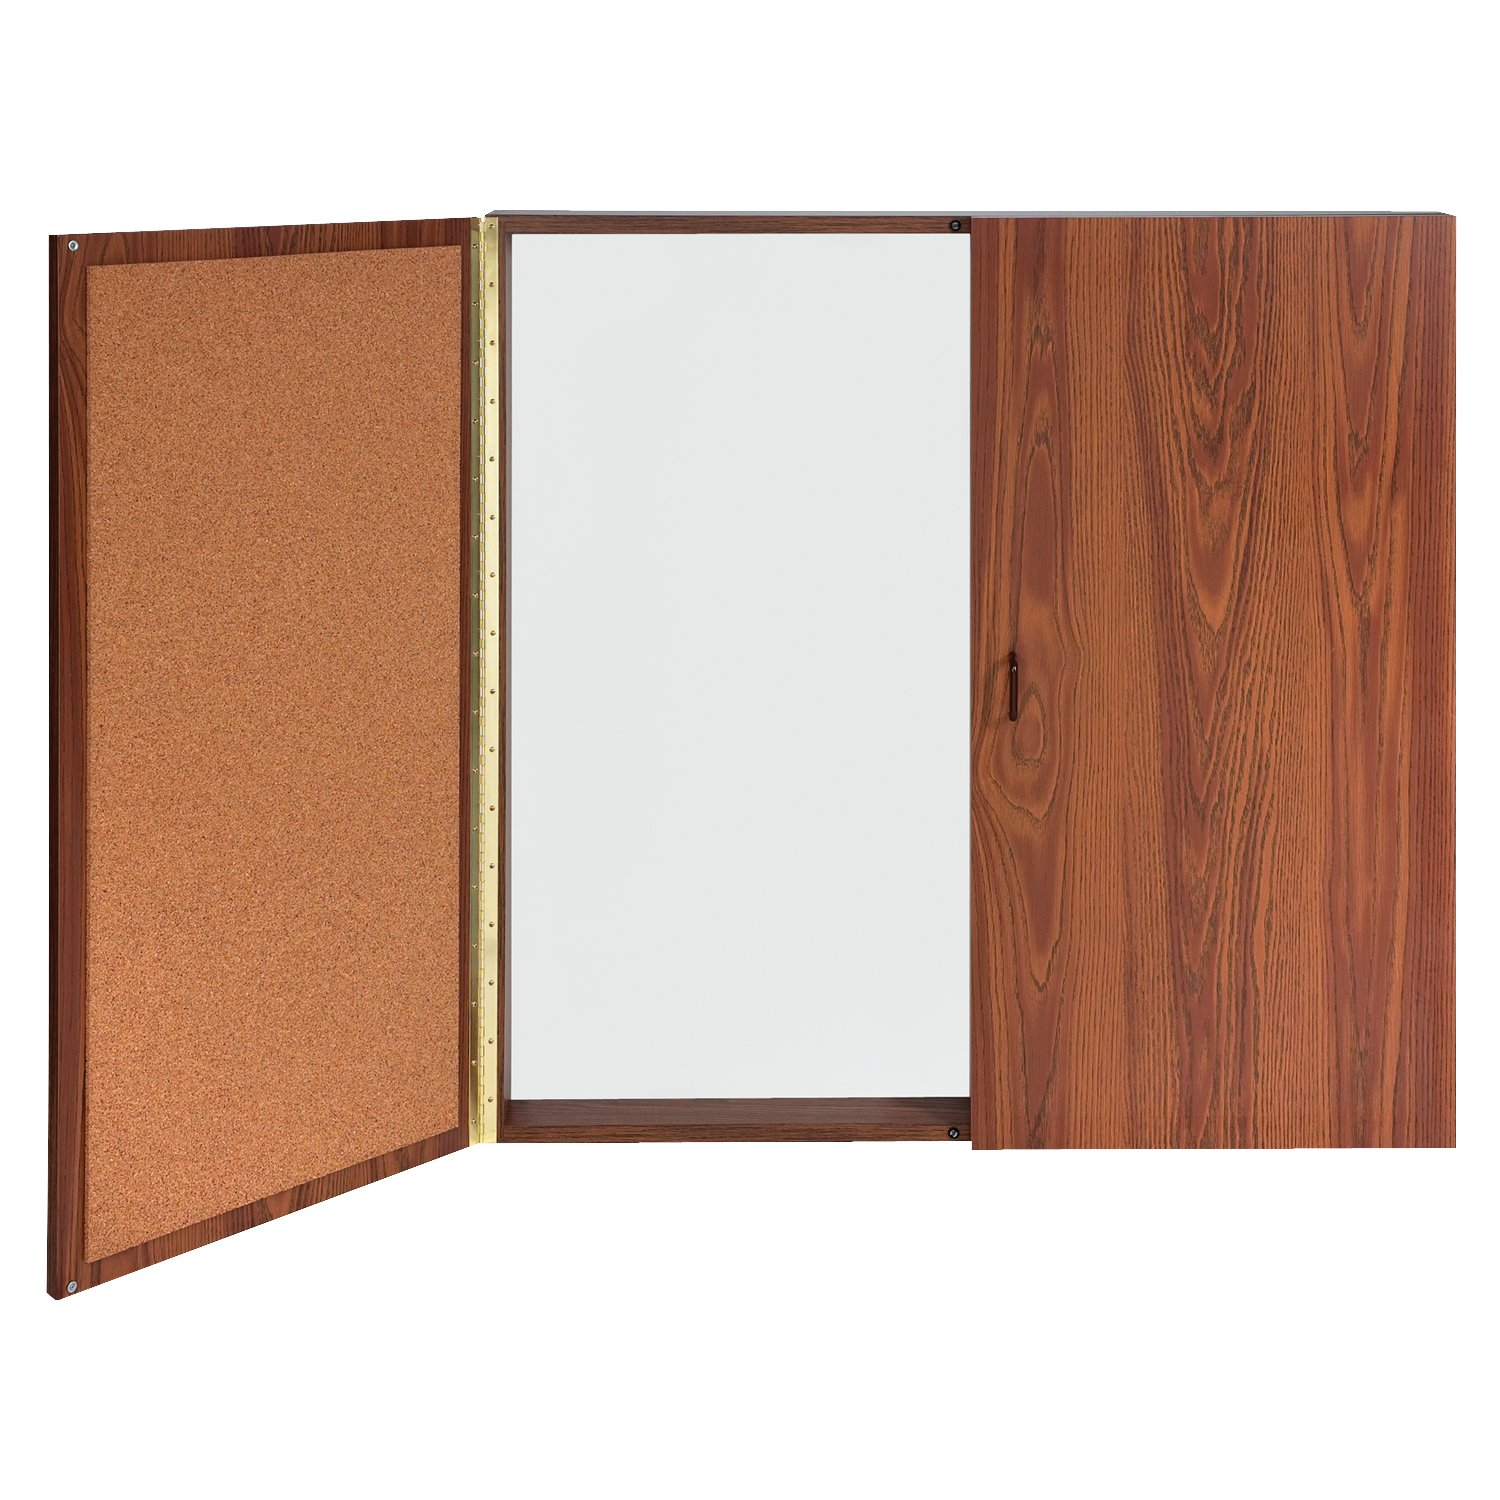 Ghent Conference Cabinet - Porcelain Magnetic Whiteboard w/Cork on Interior of Doors - Oak